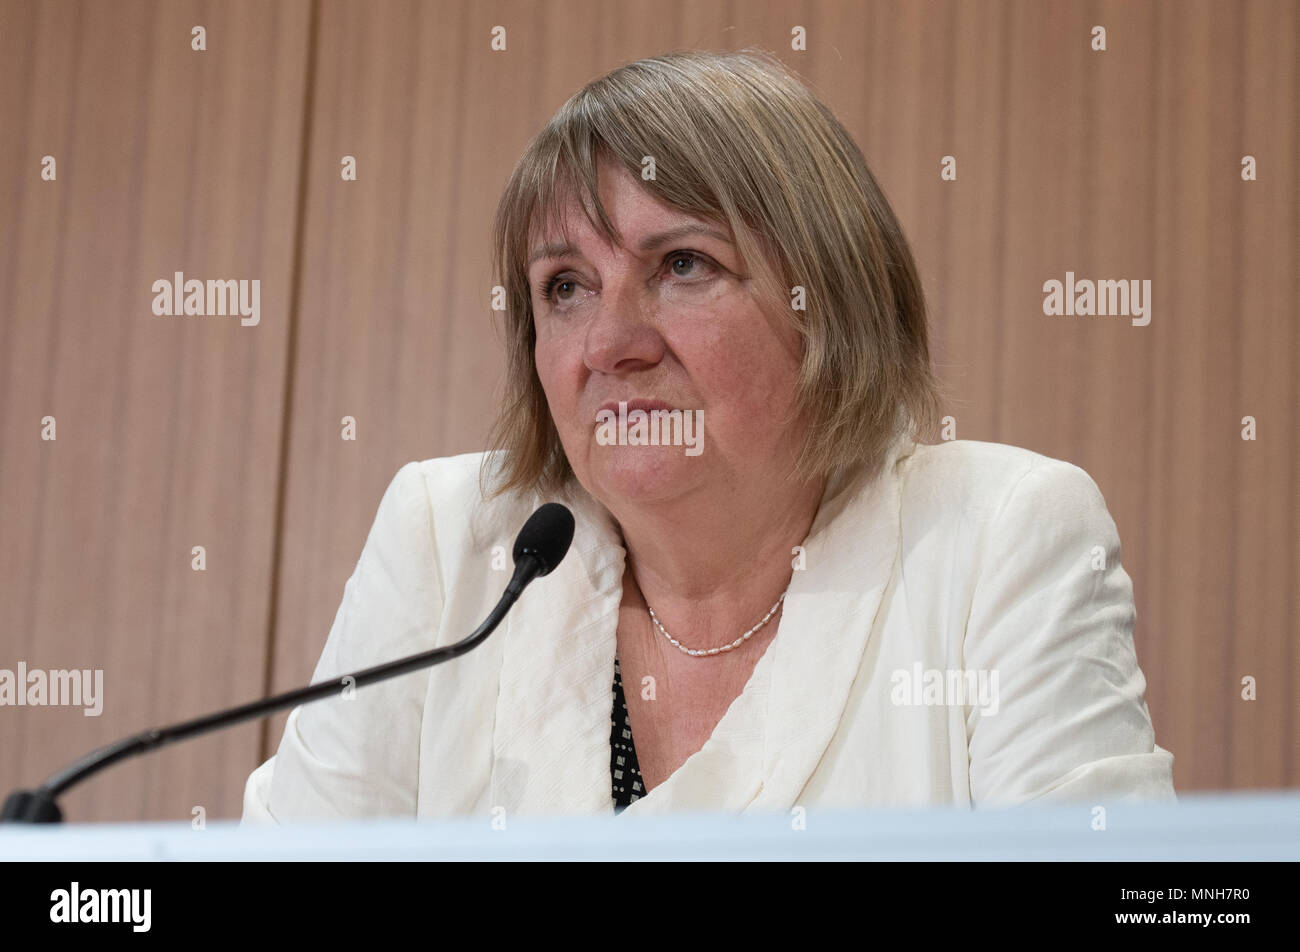 17 May 2018, Germany, Berlin: Former CDU member of the German Bundestag, Vera Lengsfeld, speaking during a press conference about the delivery of the 'Gemeinsame Erklaerung 2018'(lit. Joint Declaration 2018)to the Bundestag's petition committee. The declaration criticizes the German government's refugee policy. Photo: Paul Zinken/dpa - Stock Image